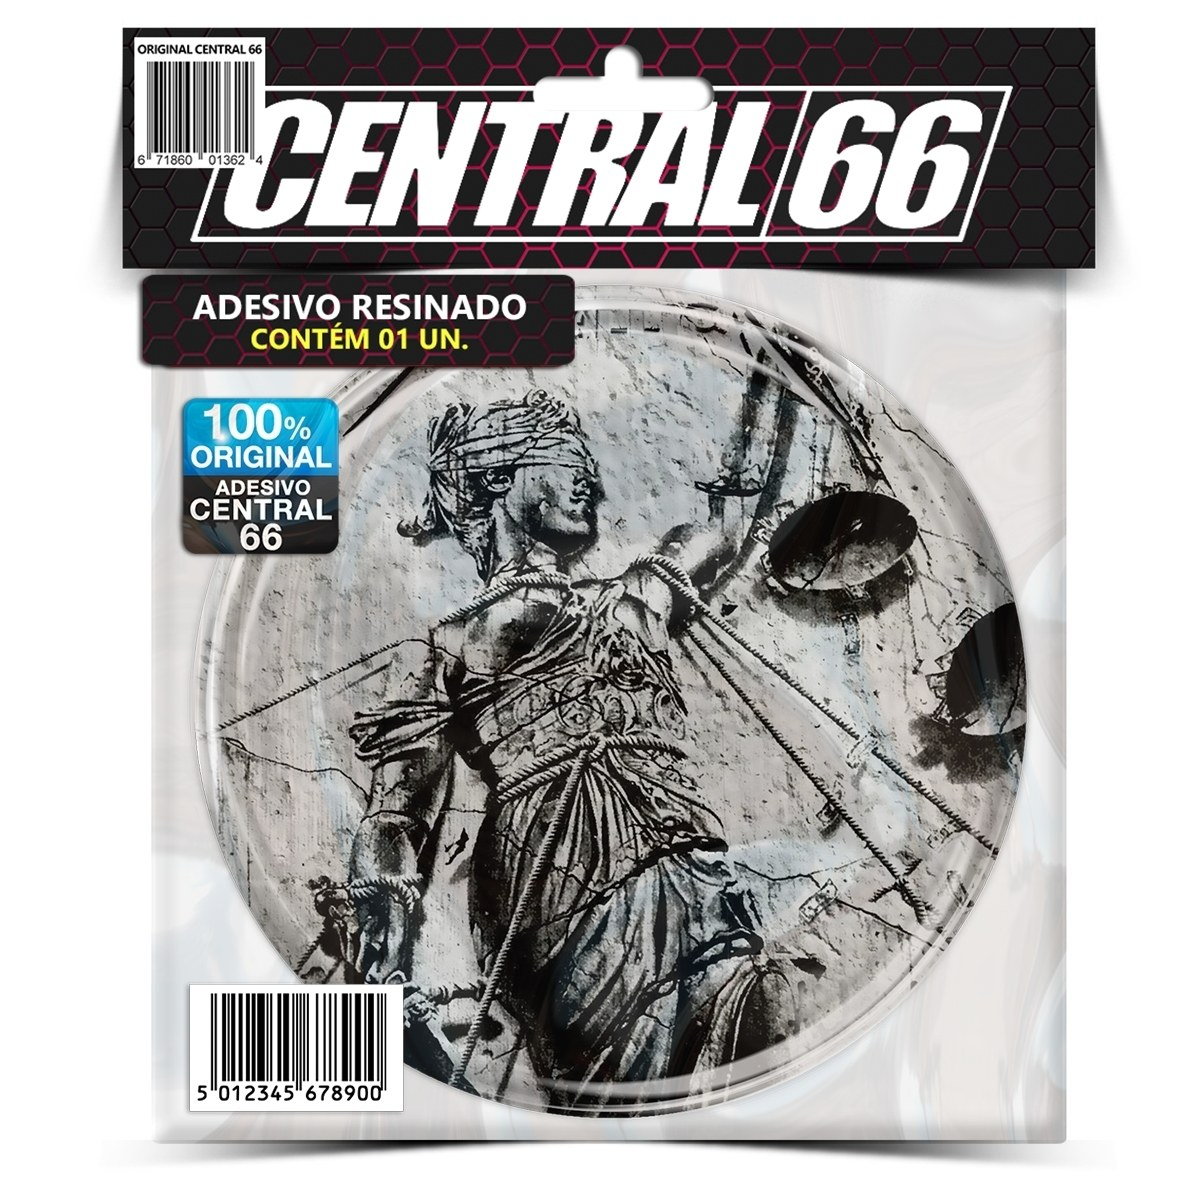 Adesivo Redondo Metallica And Justice For All – Central 66